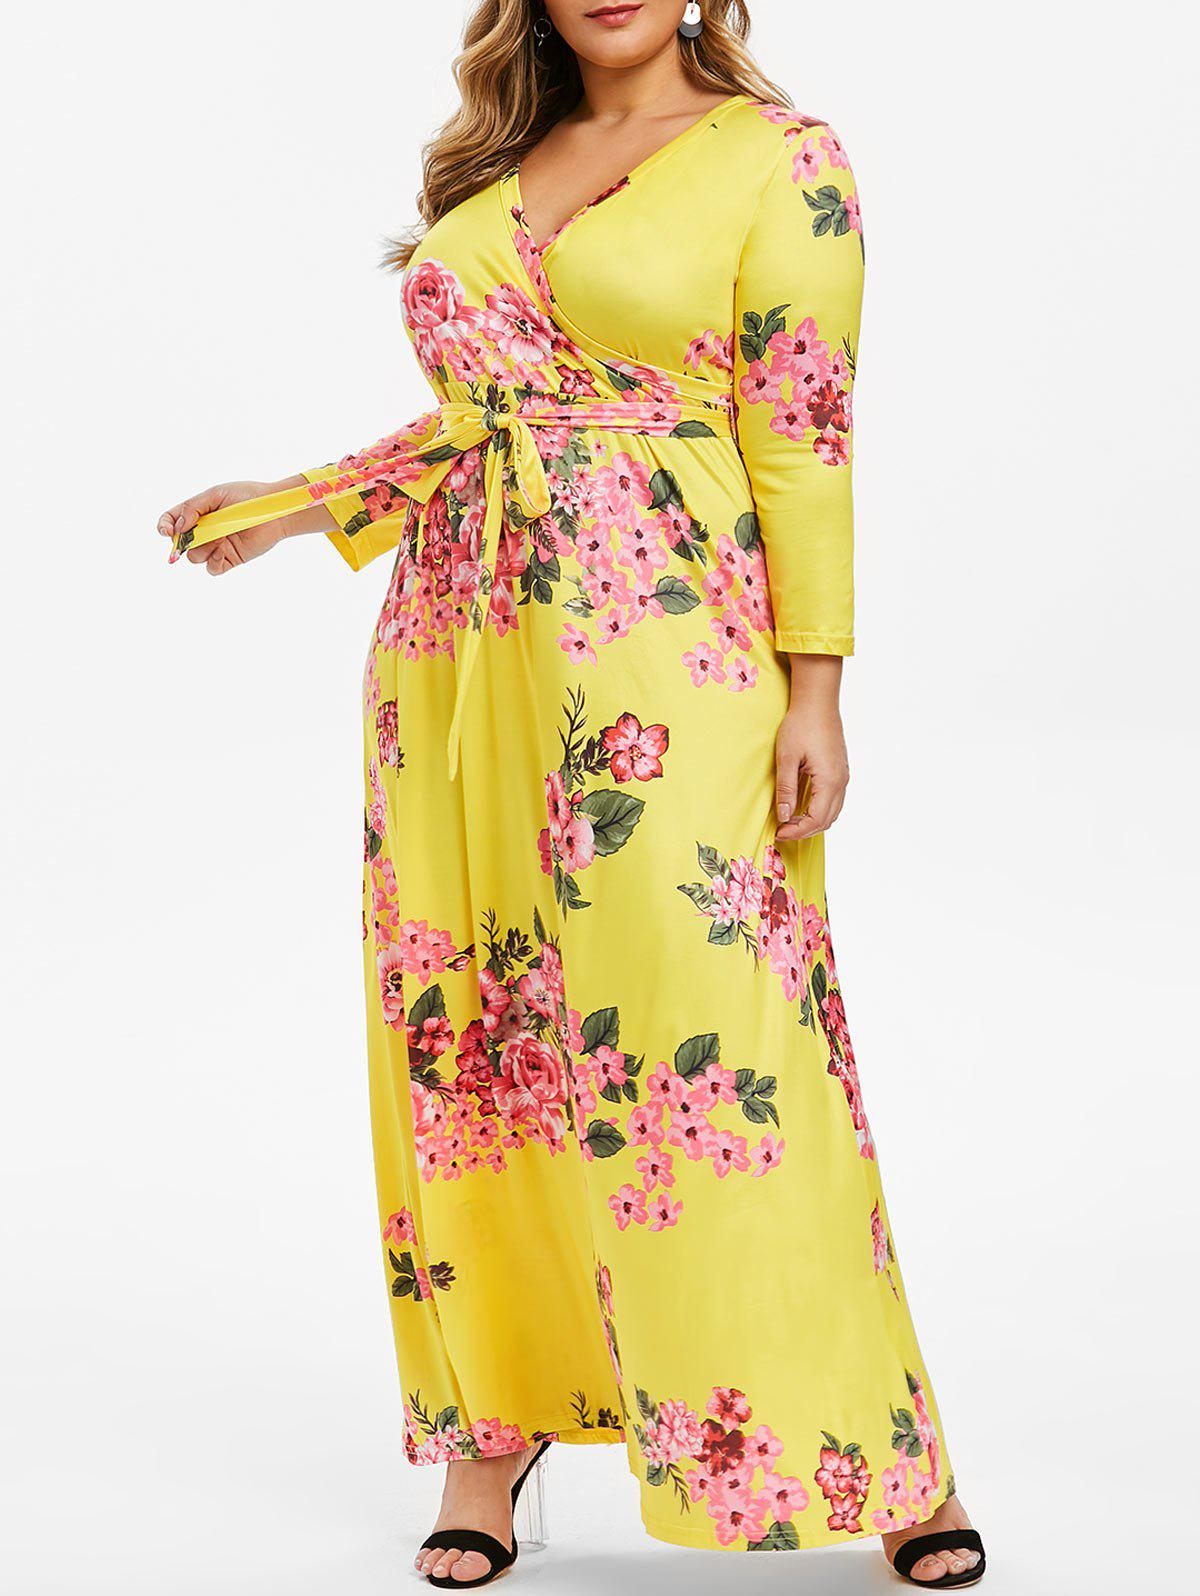 Hot Belted Floral Surplice Plus Size Maxi Dress